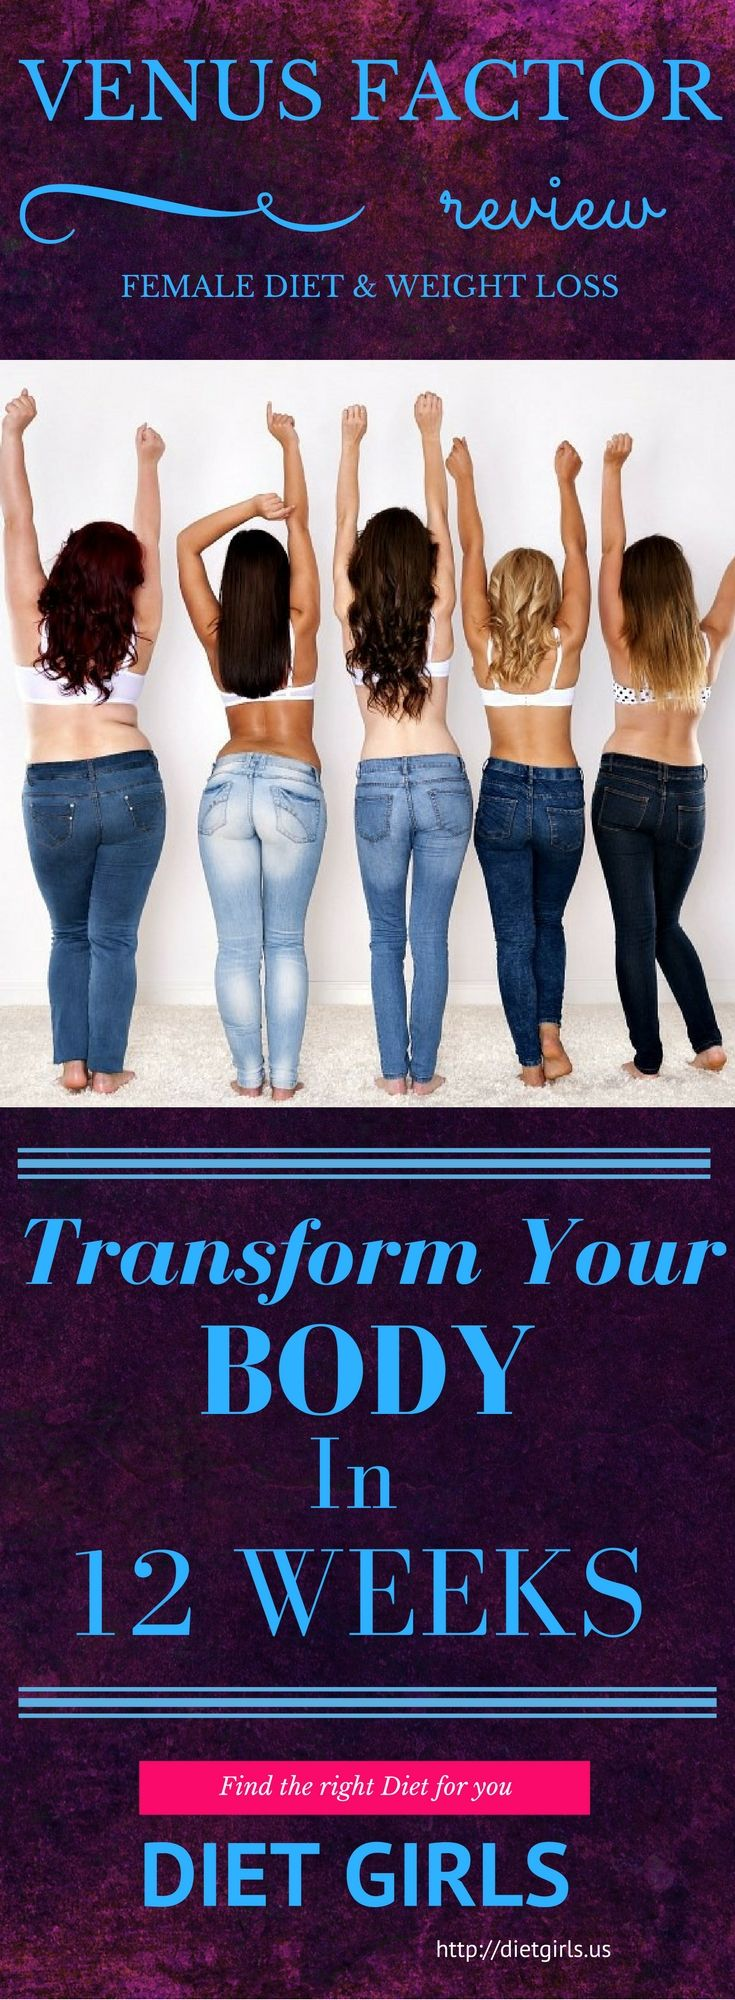 I have been doing this exercise and diet routine called the Venus Factor for a couple of months now and really have felt great for the past month and oh my gosh, I have seen amazing transitions and I have lost 20 pounds.